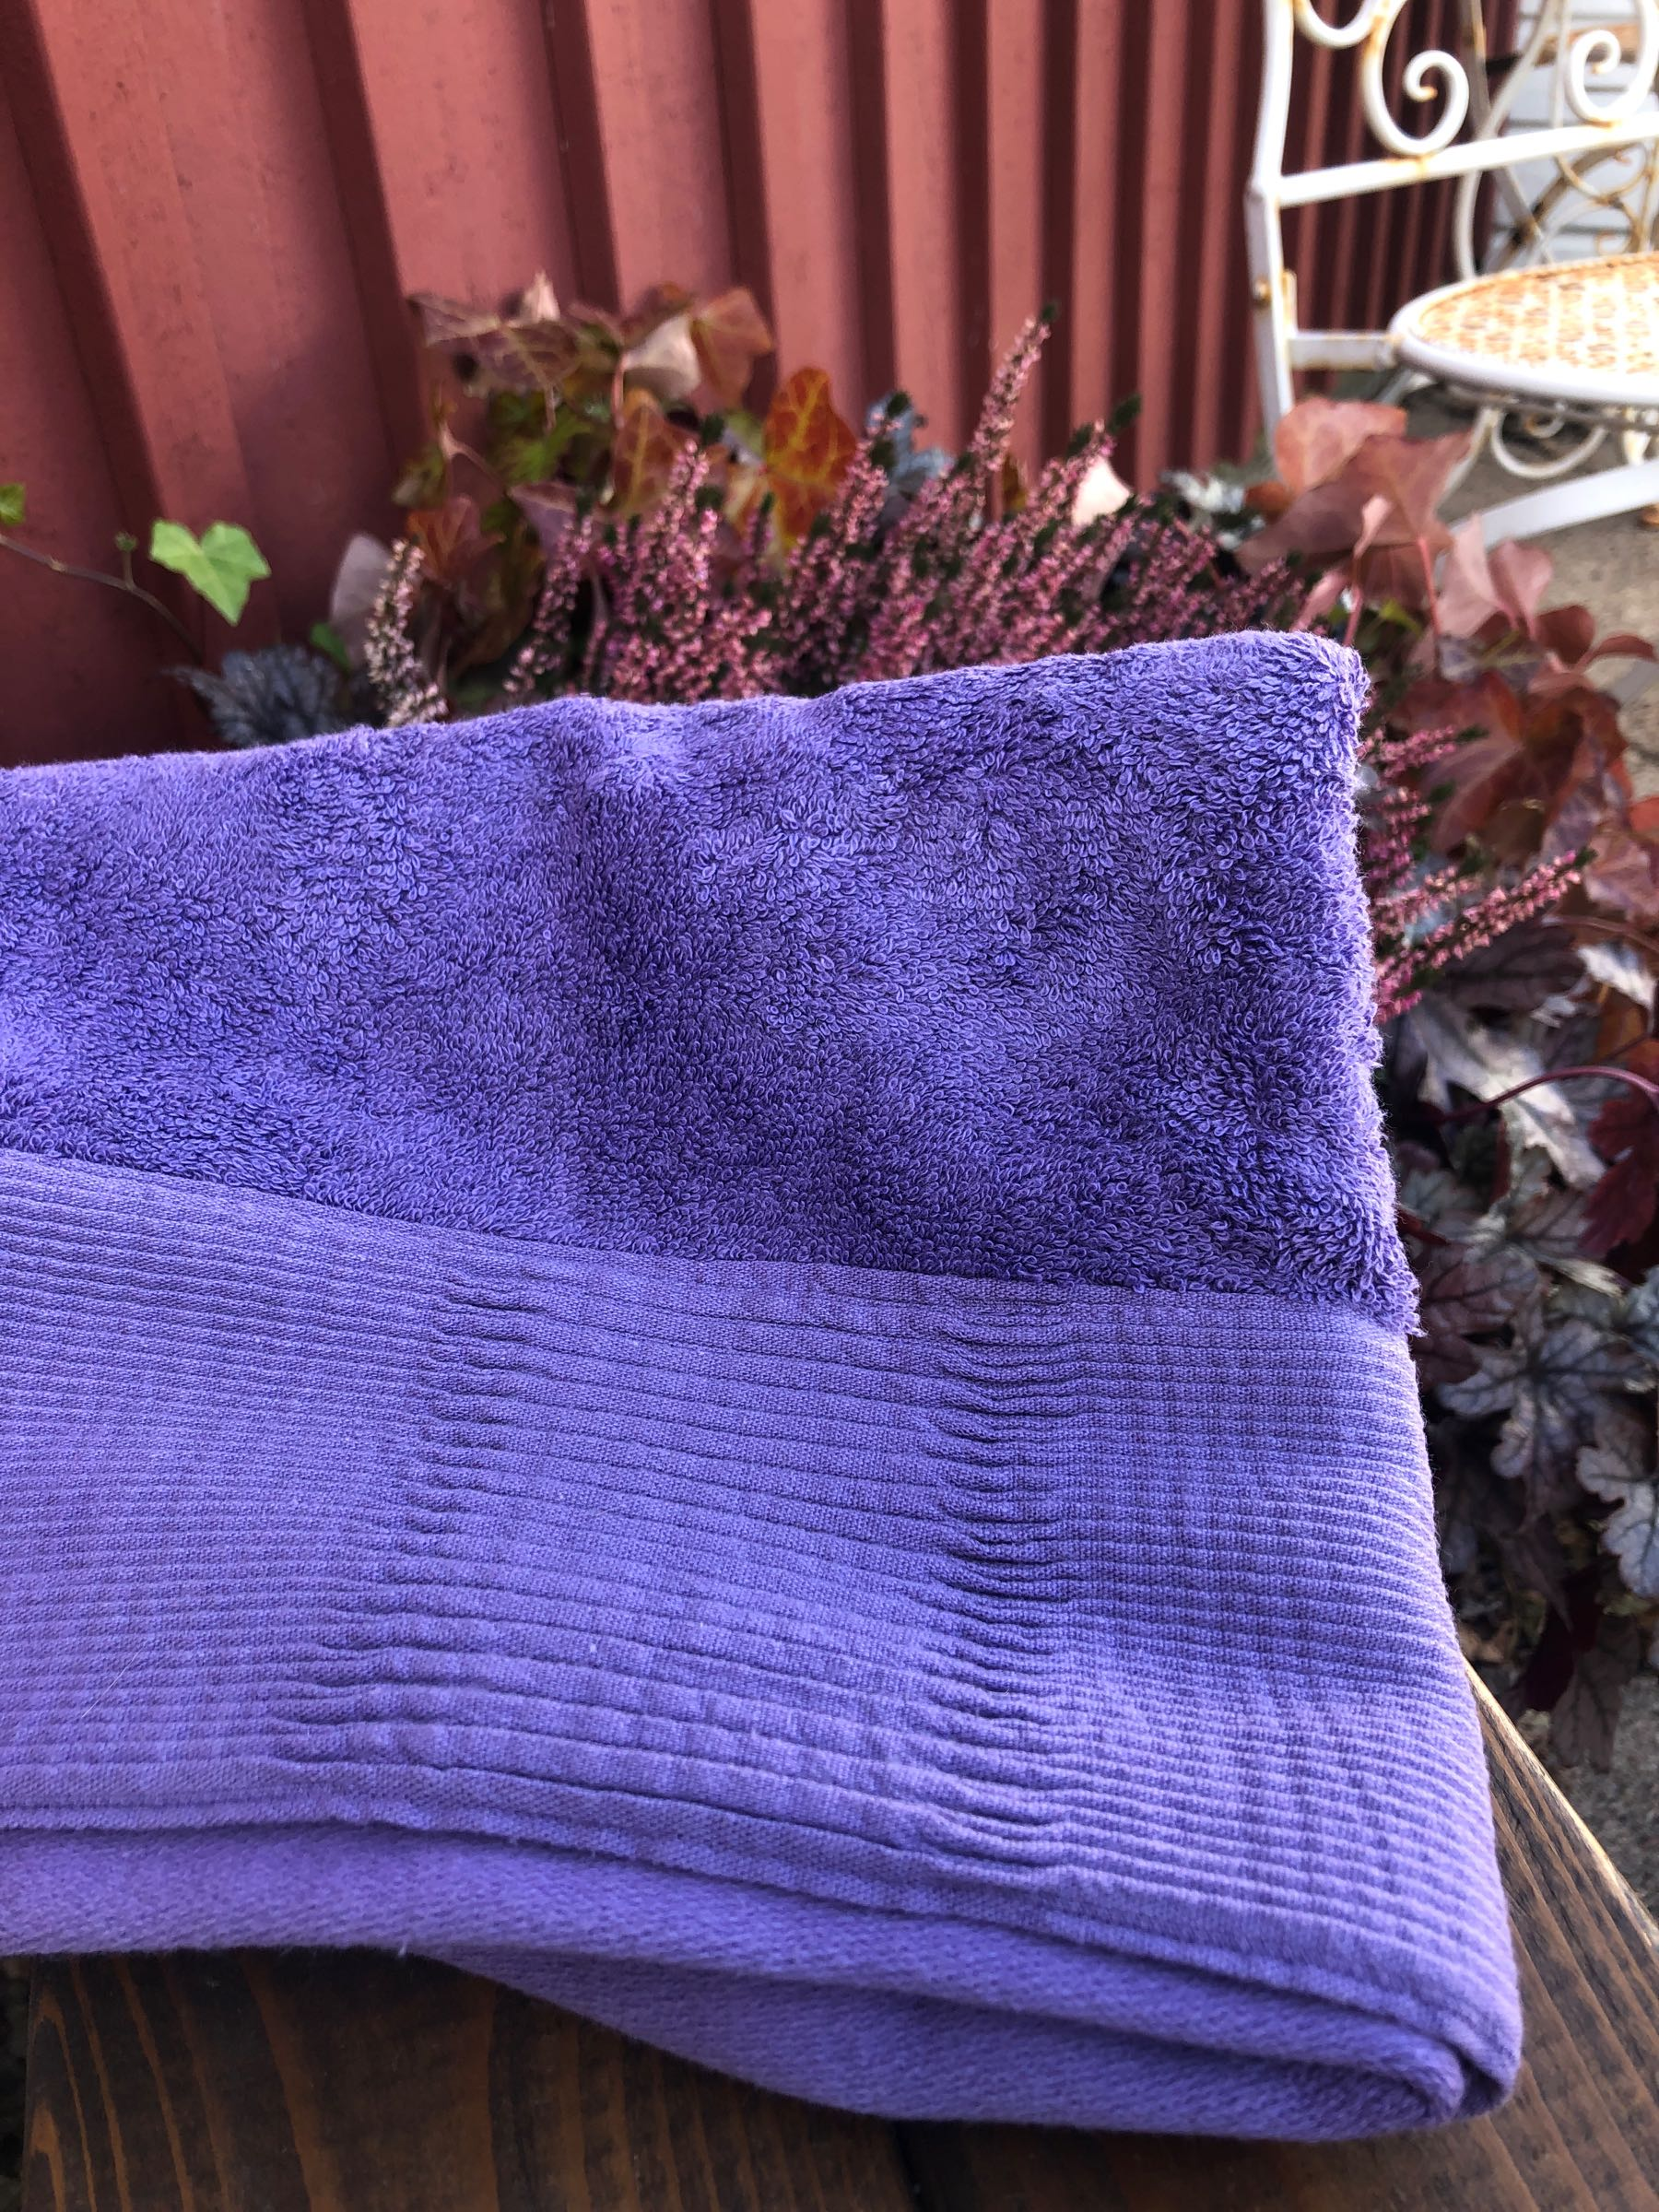 ALASSIO Terry towel 50x70cm purple